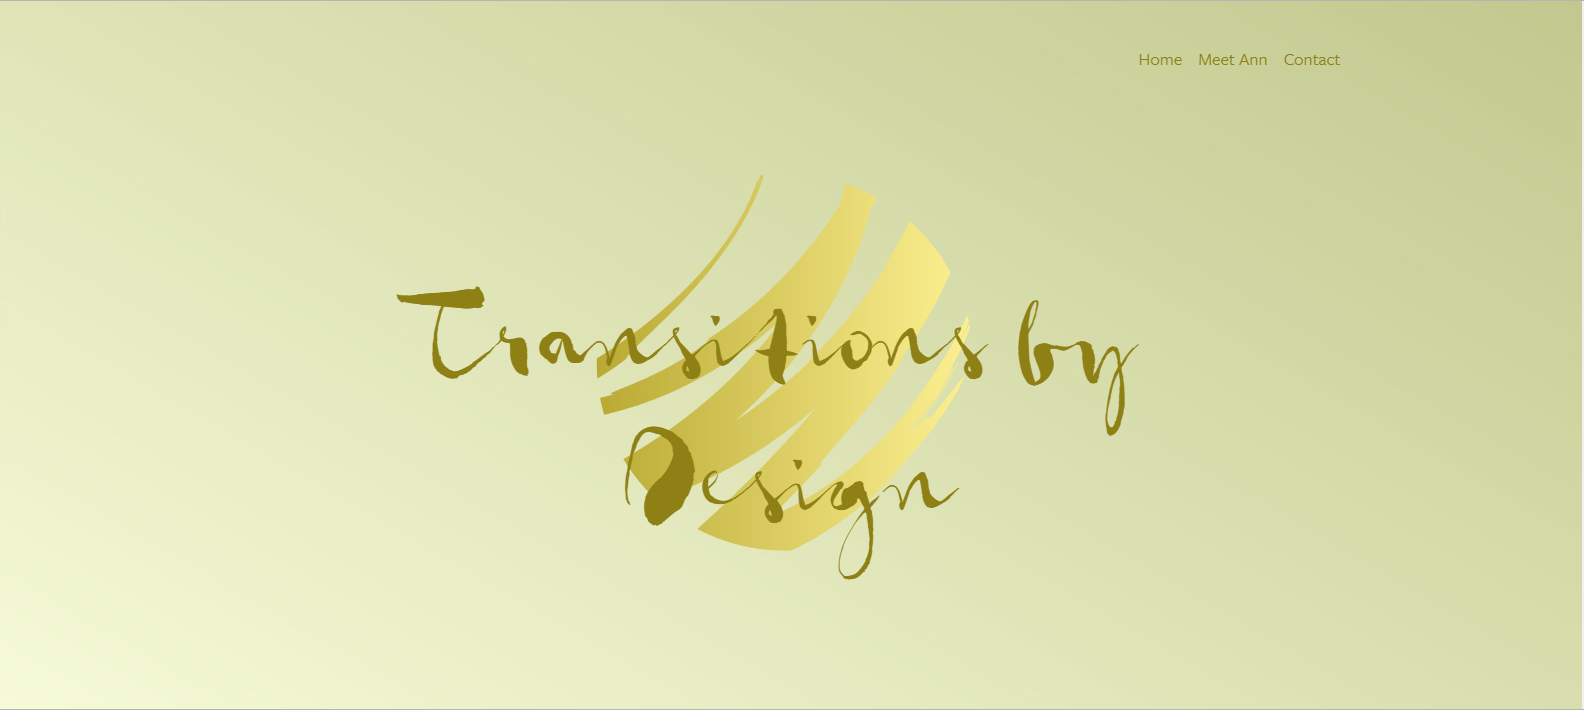 screen shot of the header for Transitionsbydesign.net